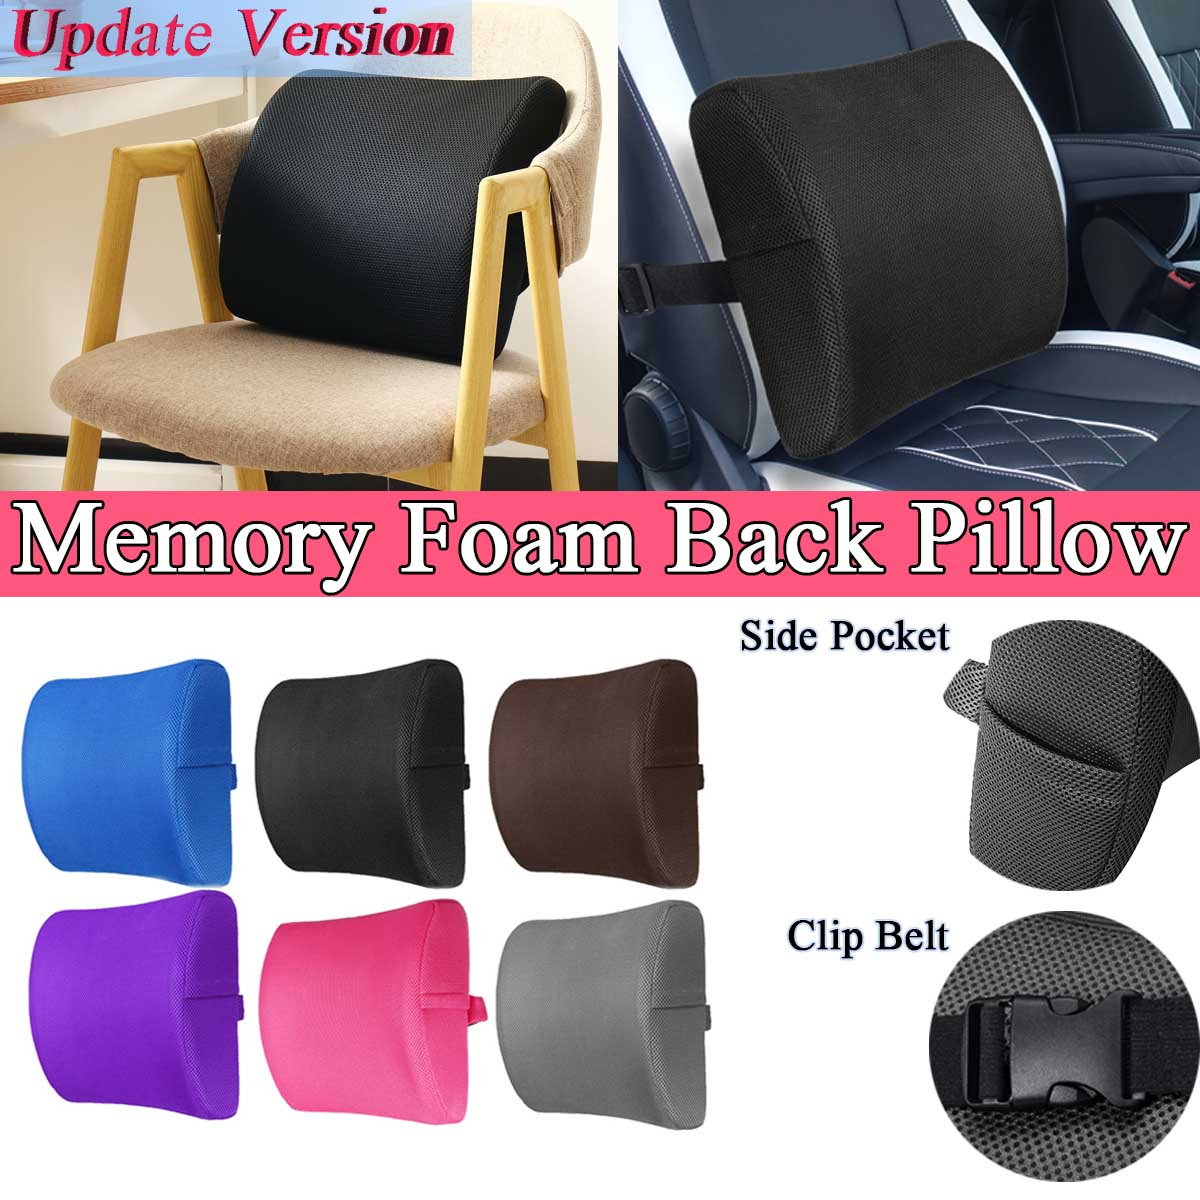 6 Color Soft Memory Foam Car Seat Winter Pillows Lumbar Support Back Massager Waist Cushion For Chairs Home Office Relieve Pain Seat Supports Aliexpress